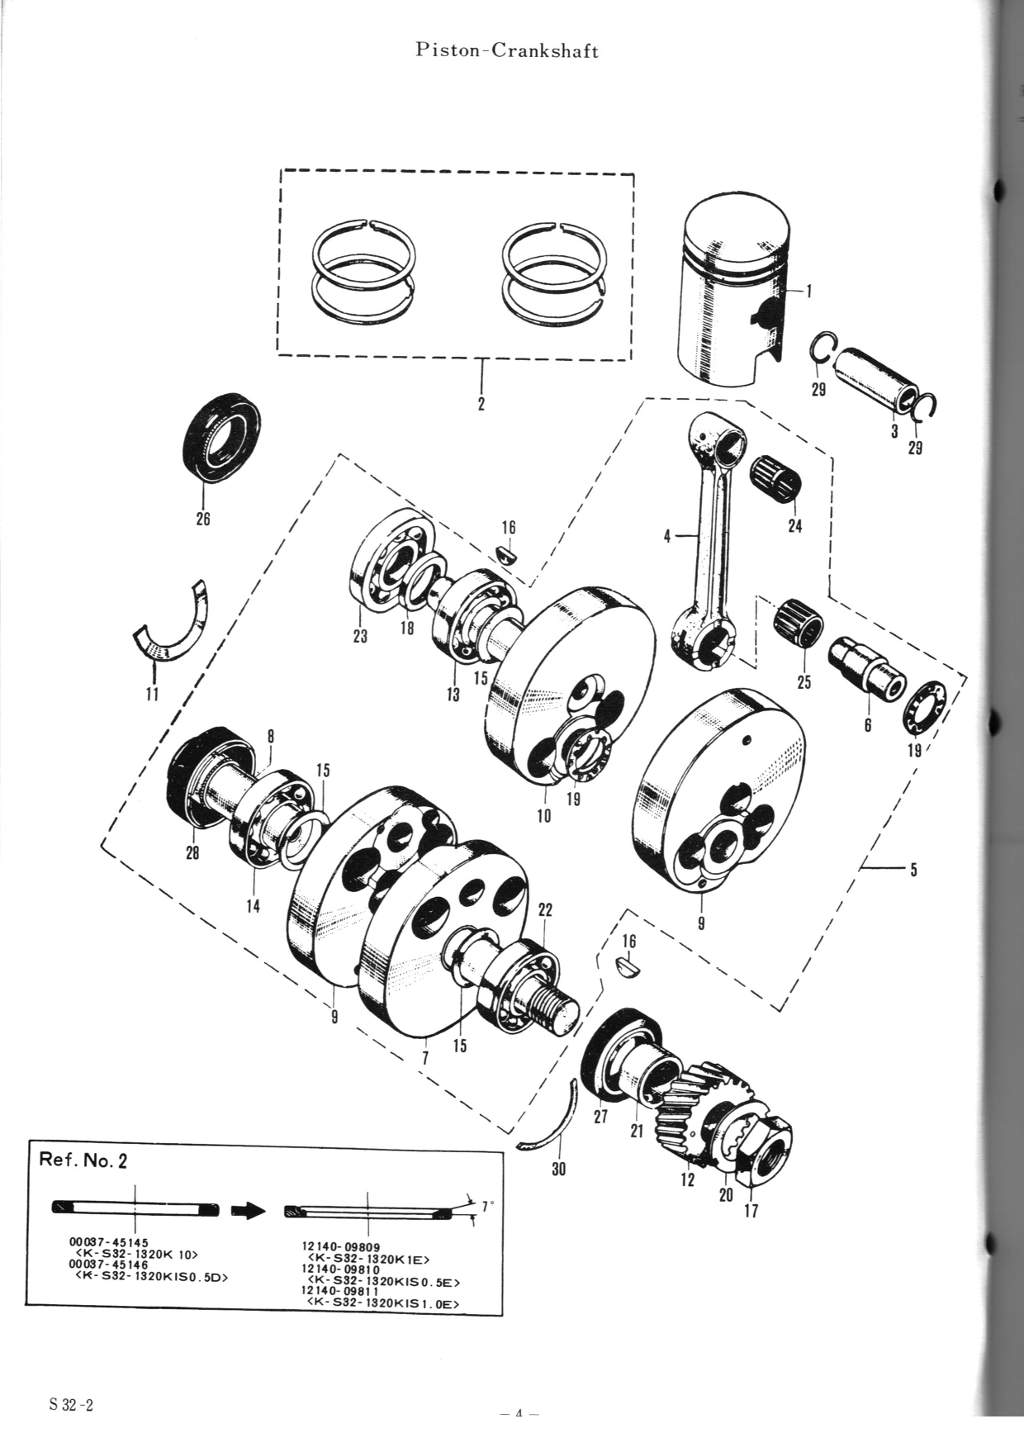 Suzuki S32 Parts Manual